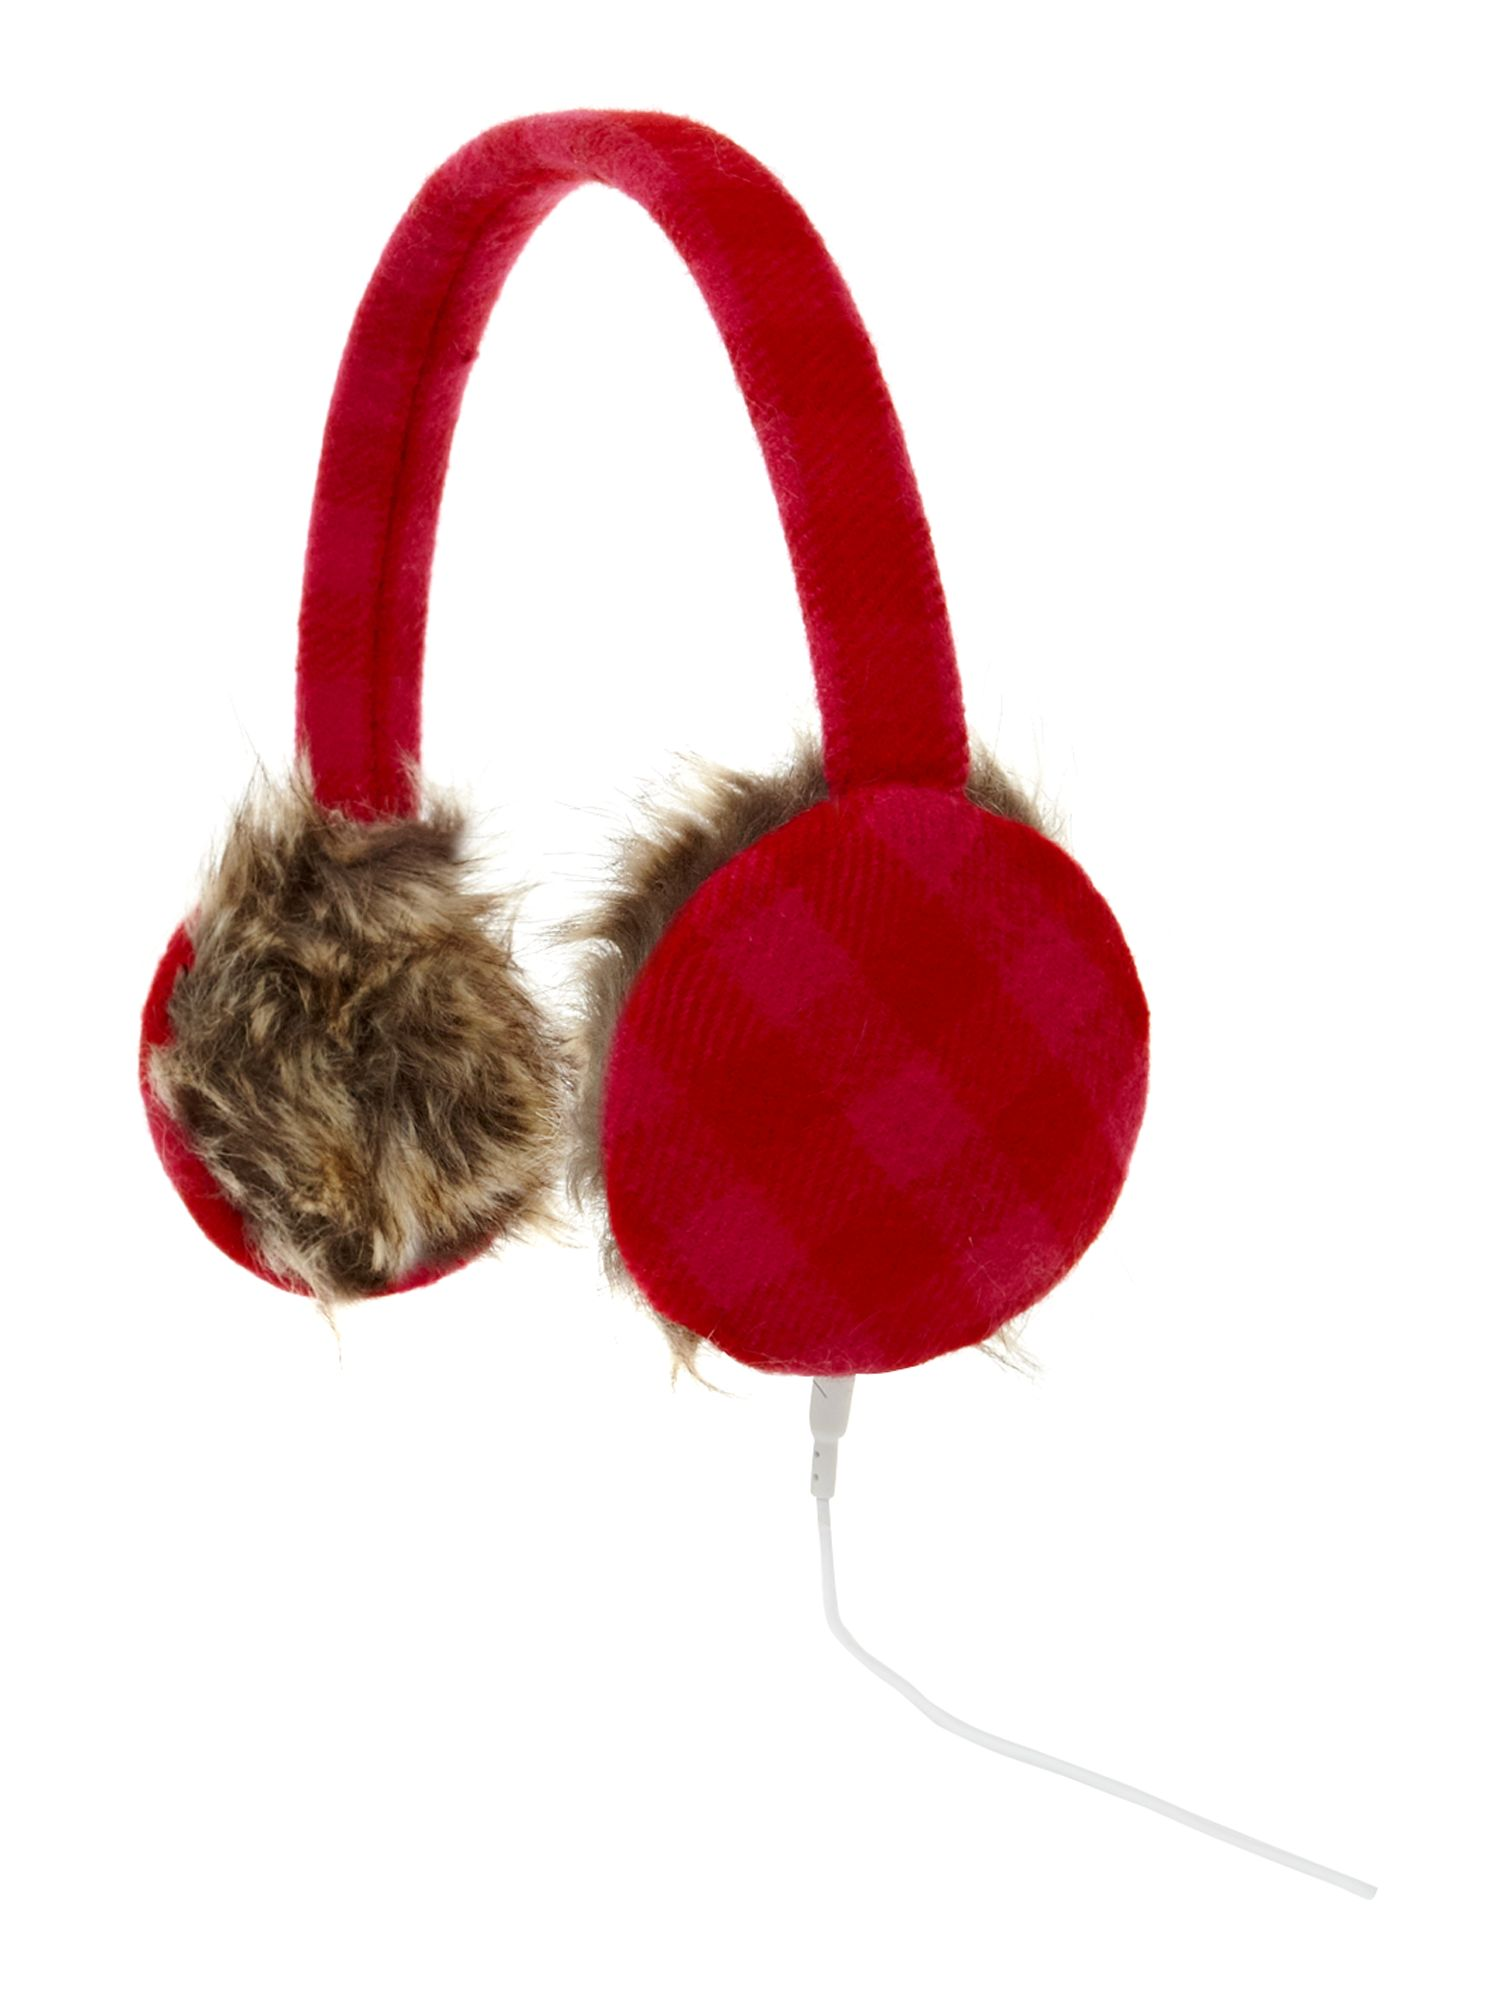 Bright checked headphones